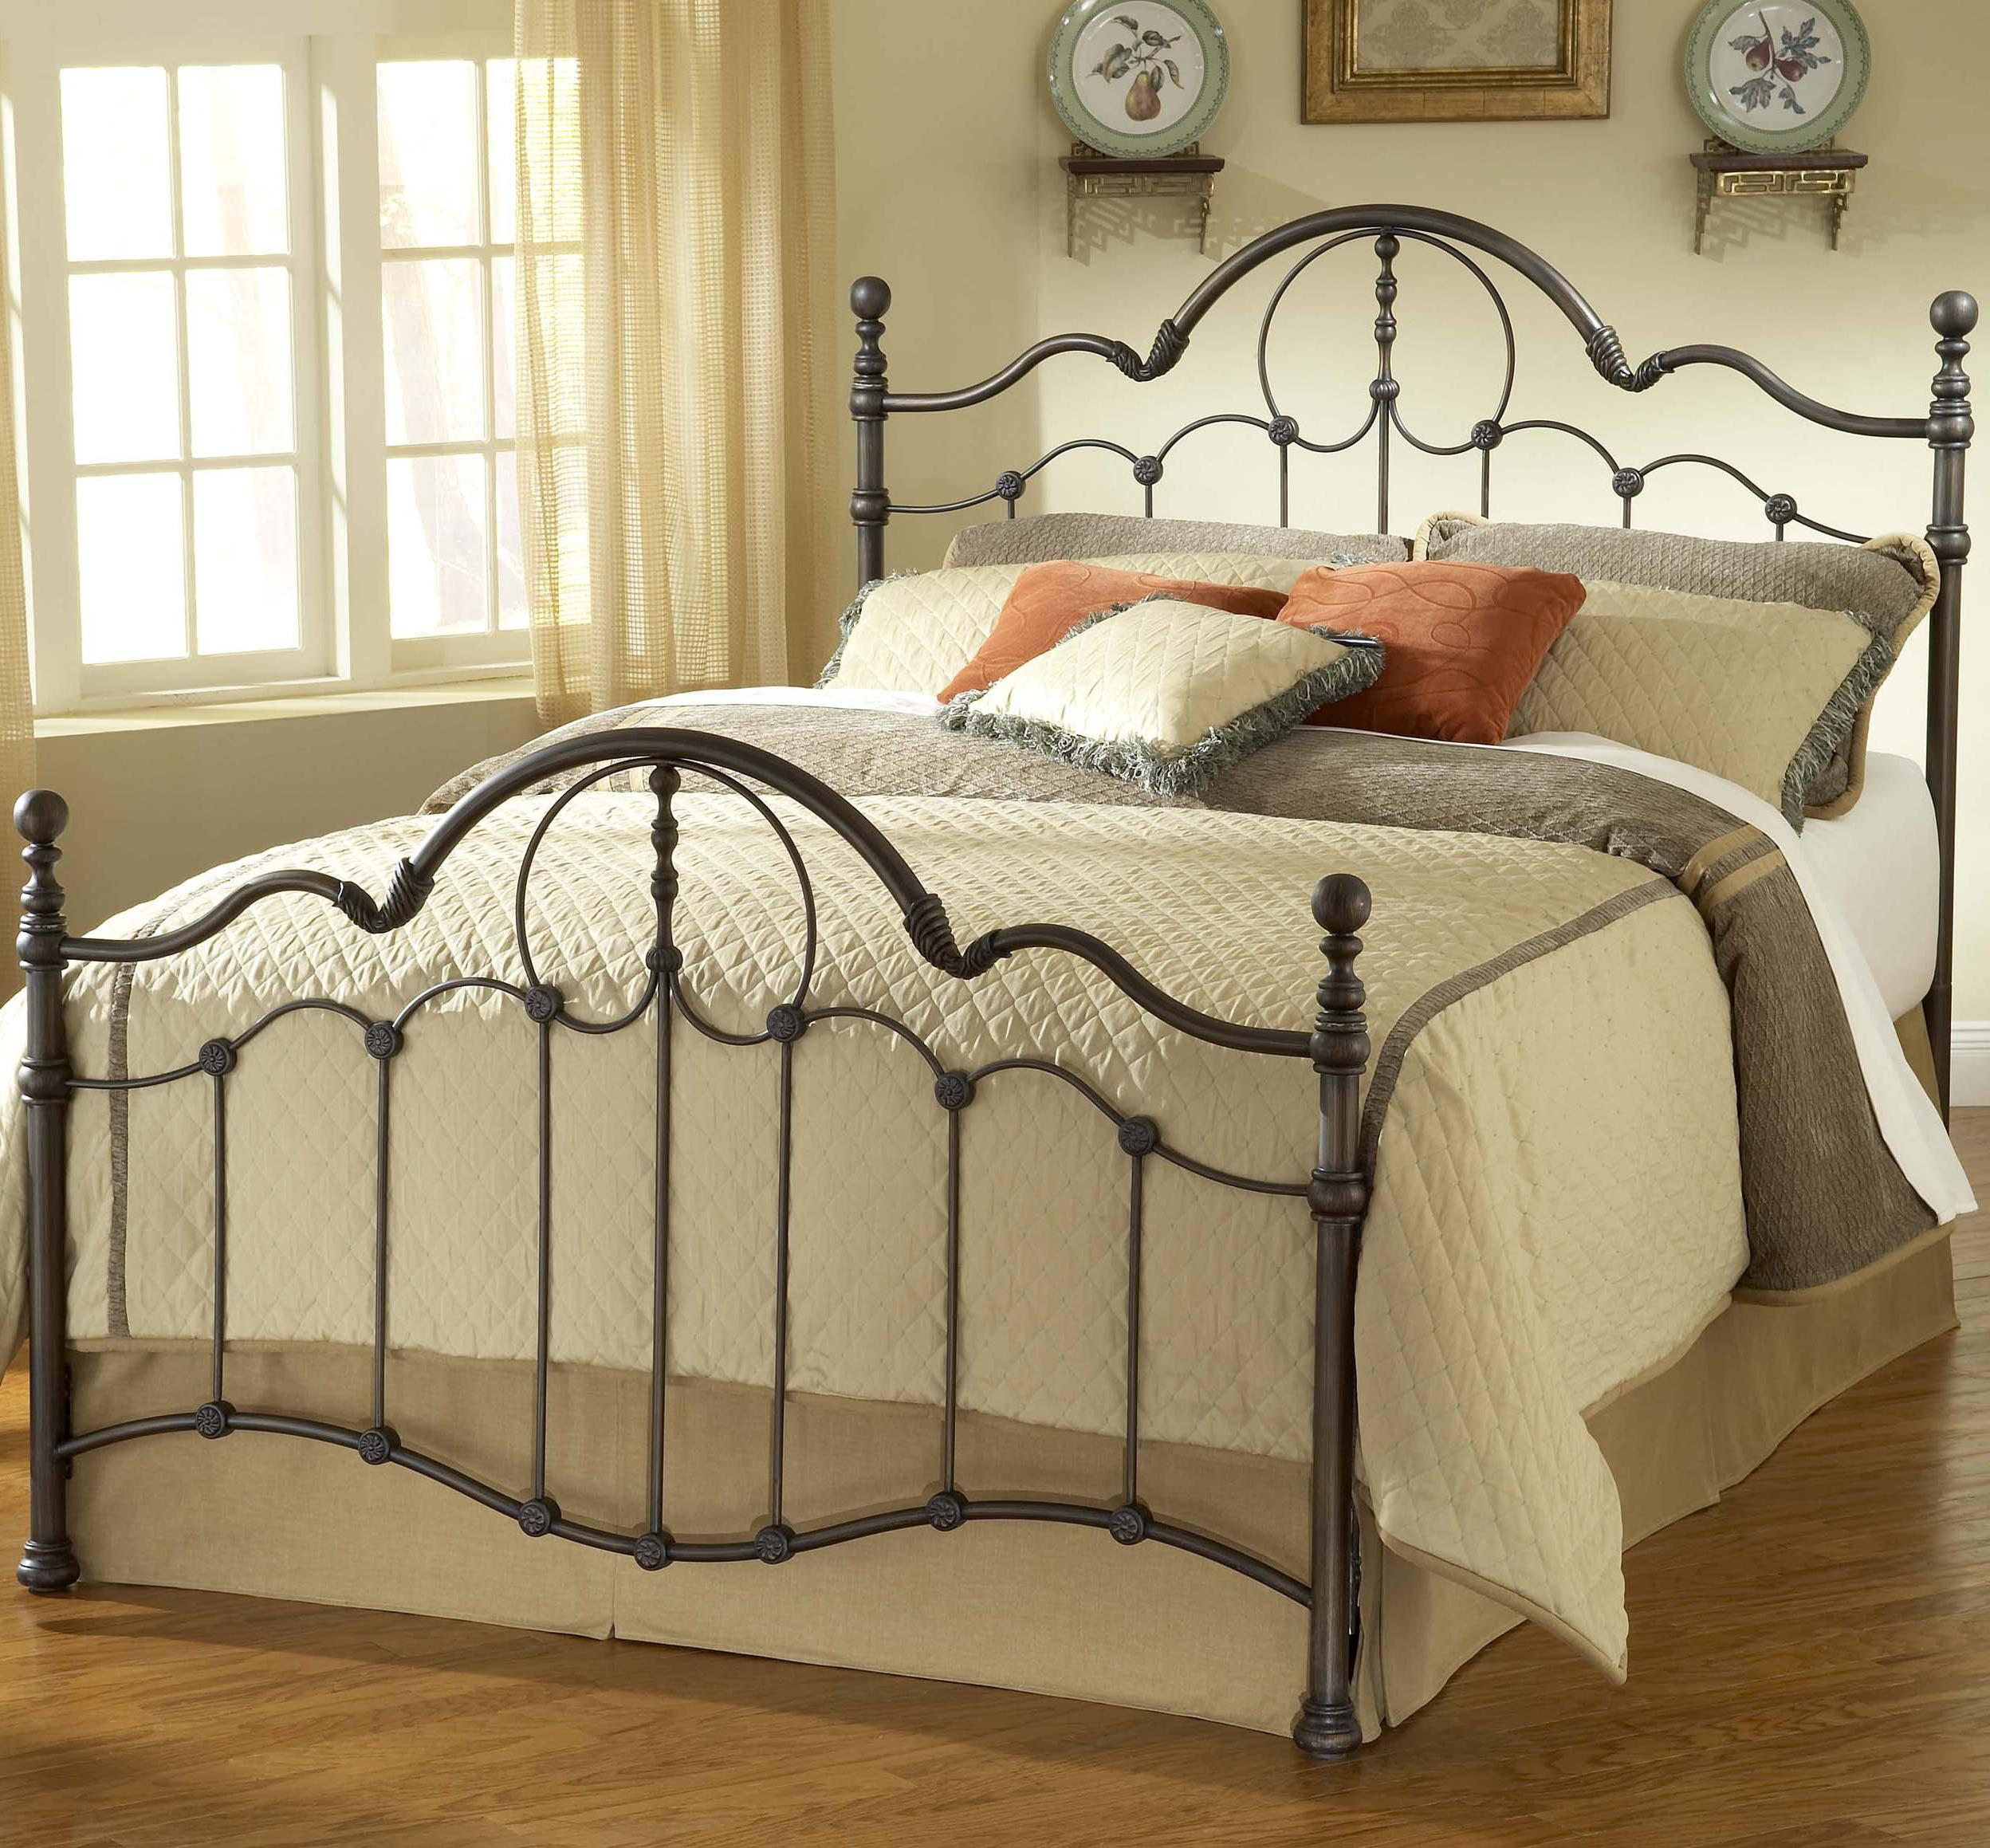 Hillsdale Metal Beds King Venetian Bed - Item Number: 1480BKR